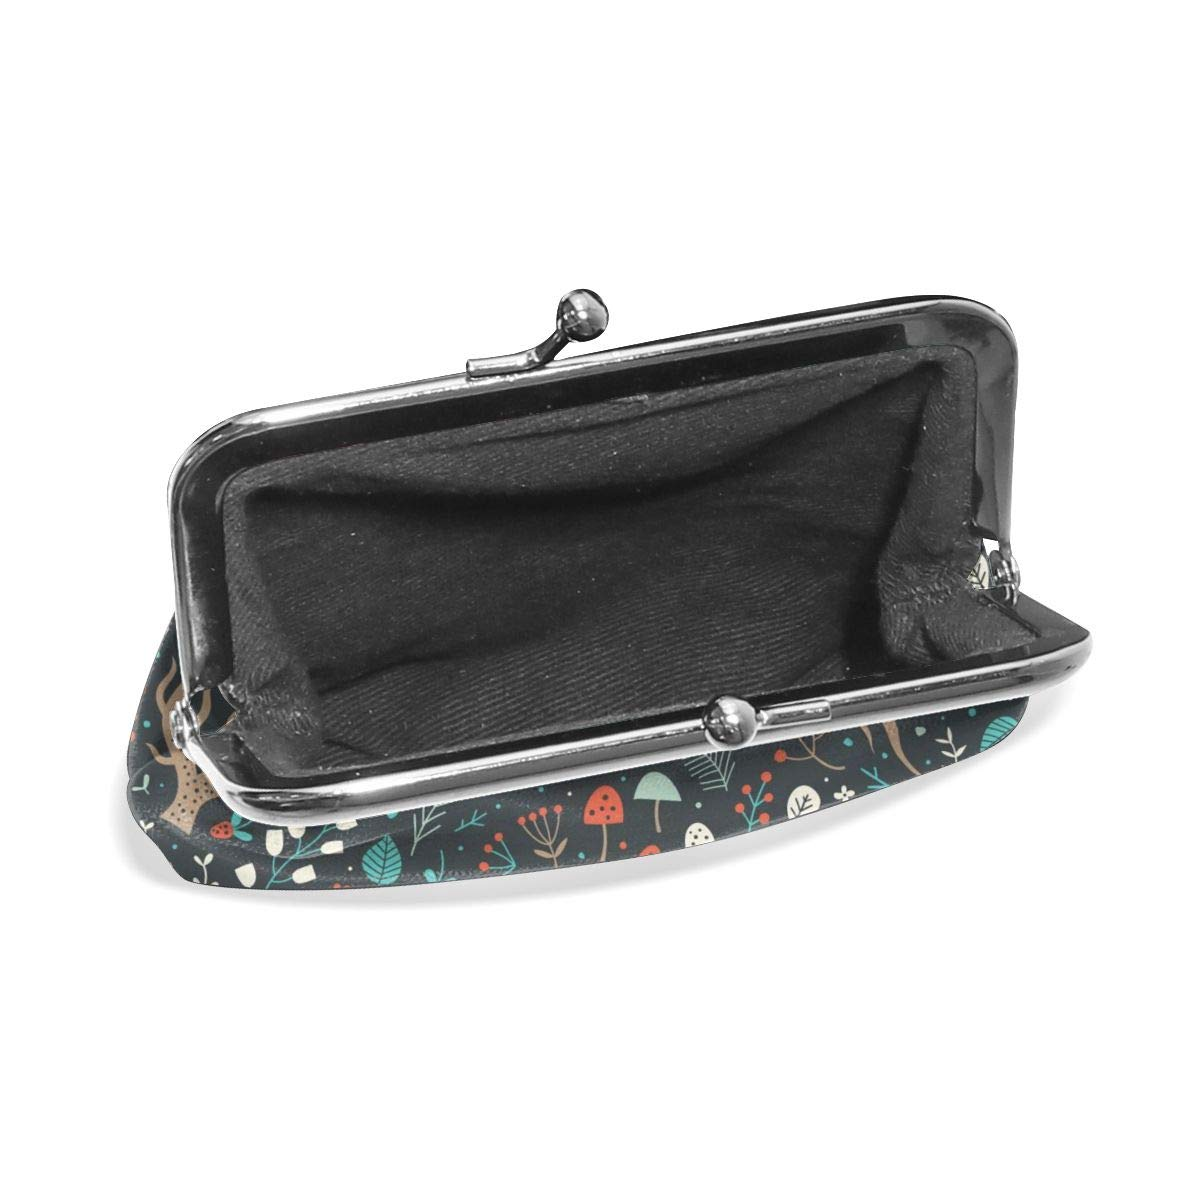 Poream Floral Surface Design Texture With Forest Herbs Roots Mushrooms And Flowers Retro Leather Cute Classic Floral Coin Purse Clutch Pouch Wallet For Girls And Womens